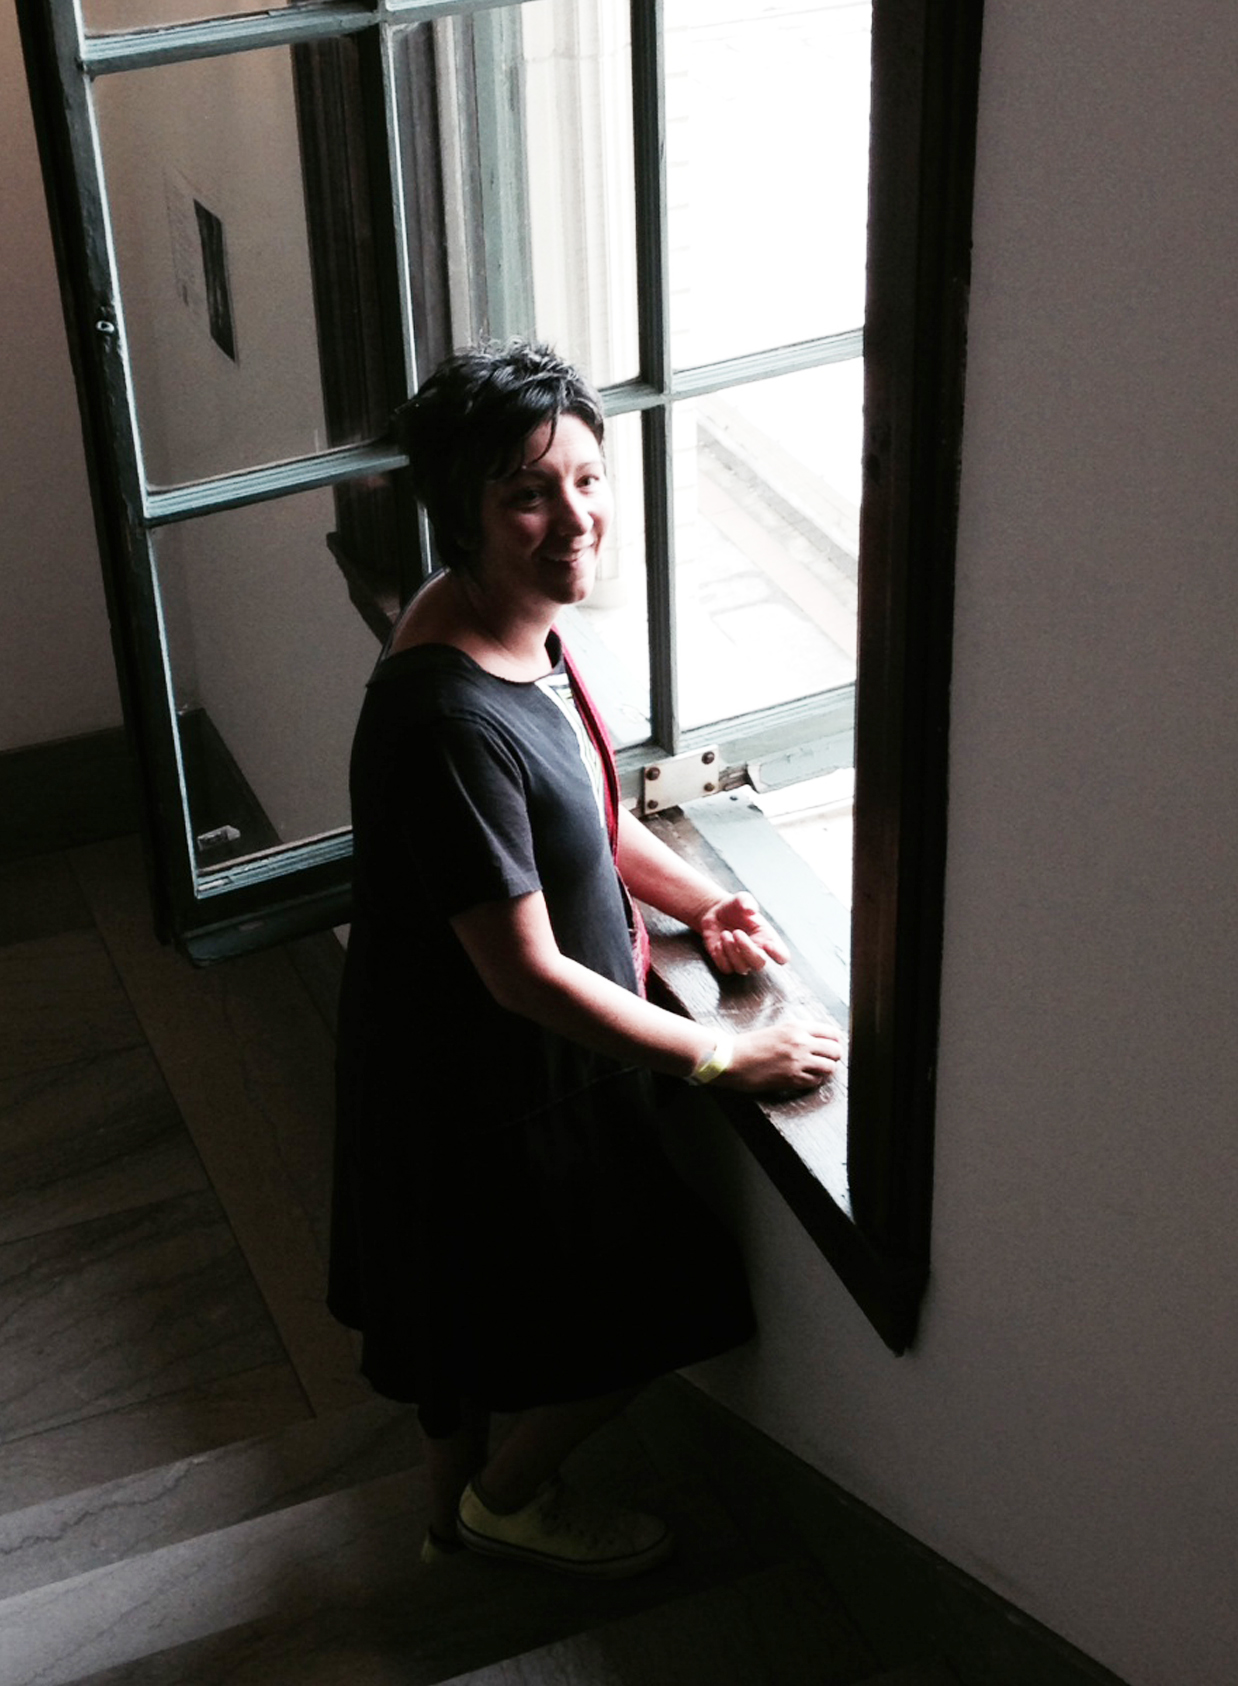 andrea-at-the-window.jpg